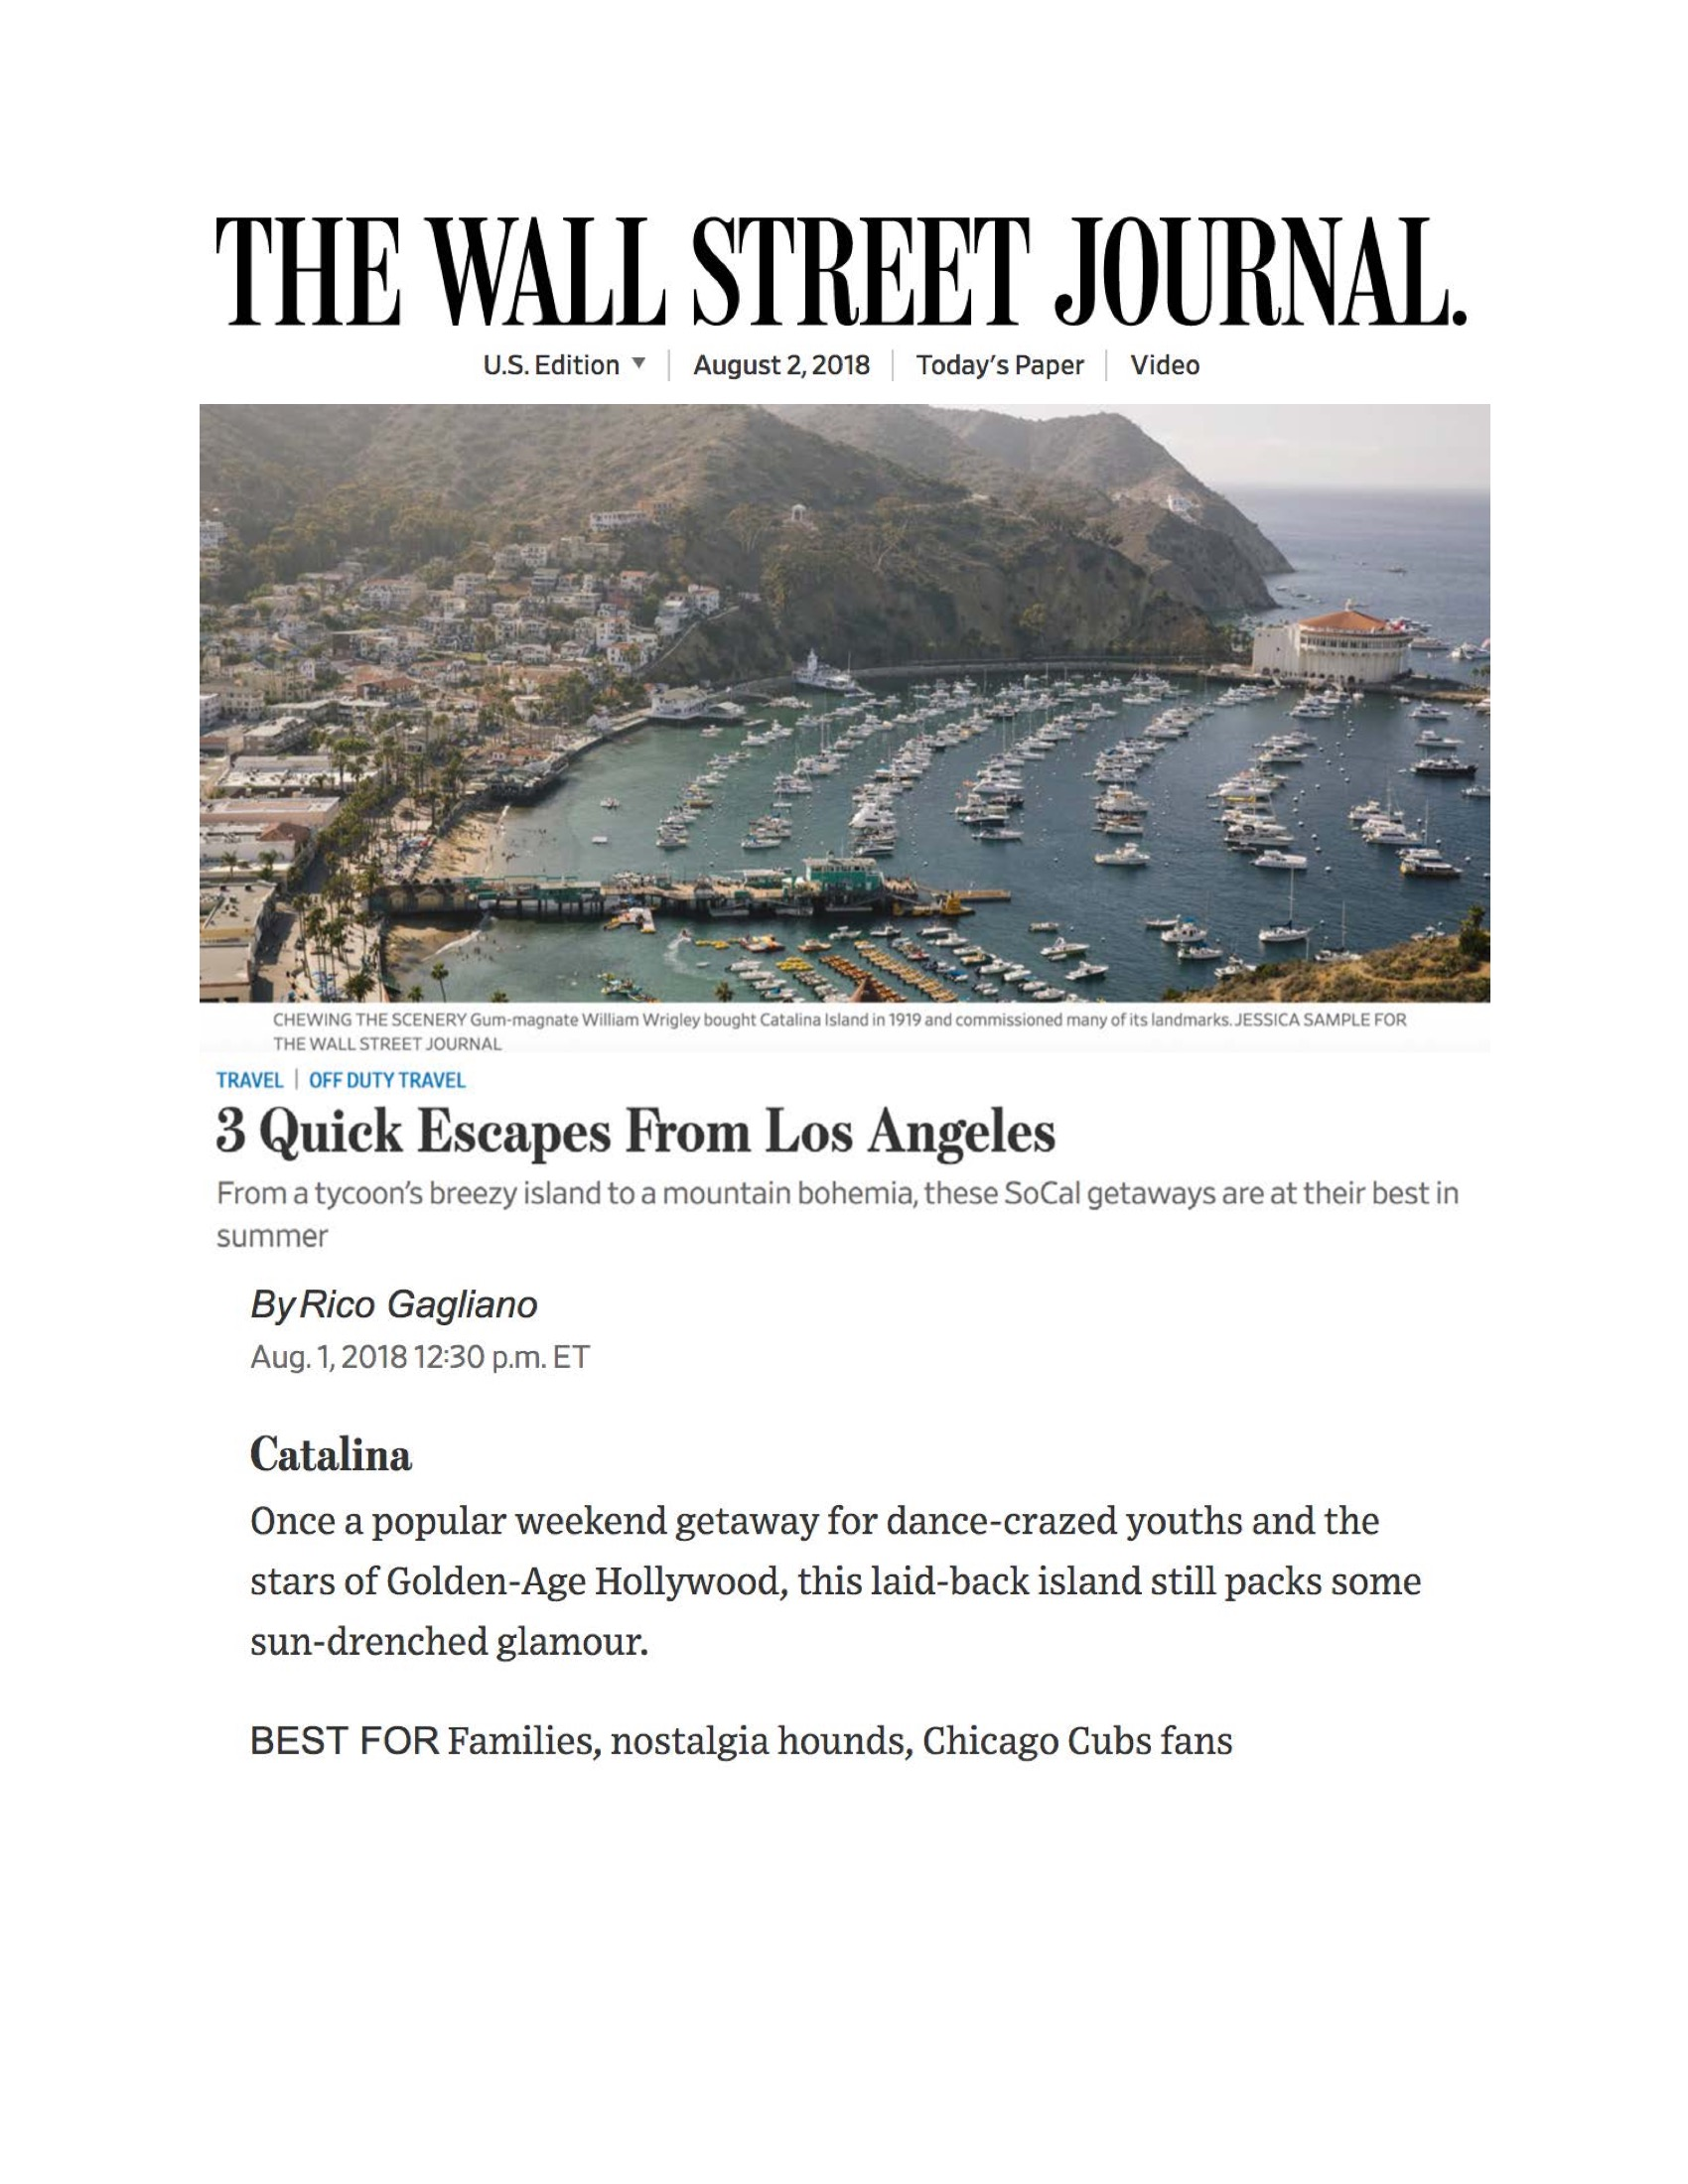 Aug 2 WSJ-1.jpeg